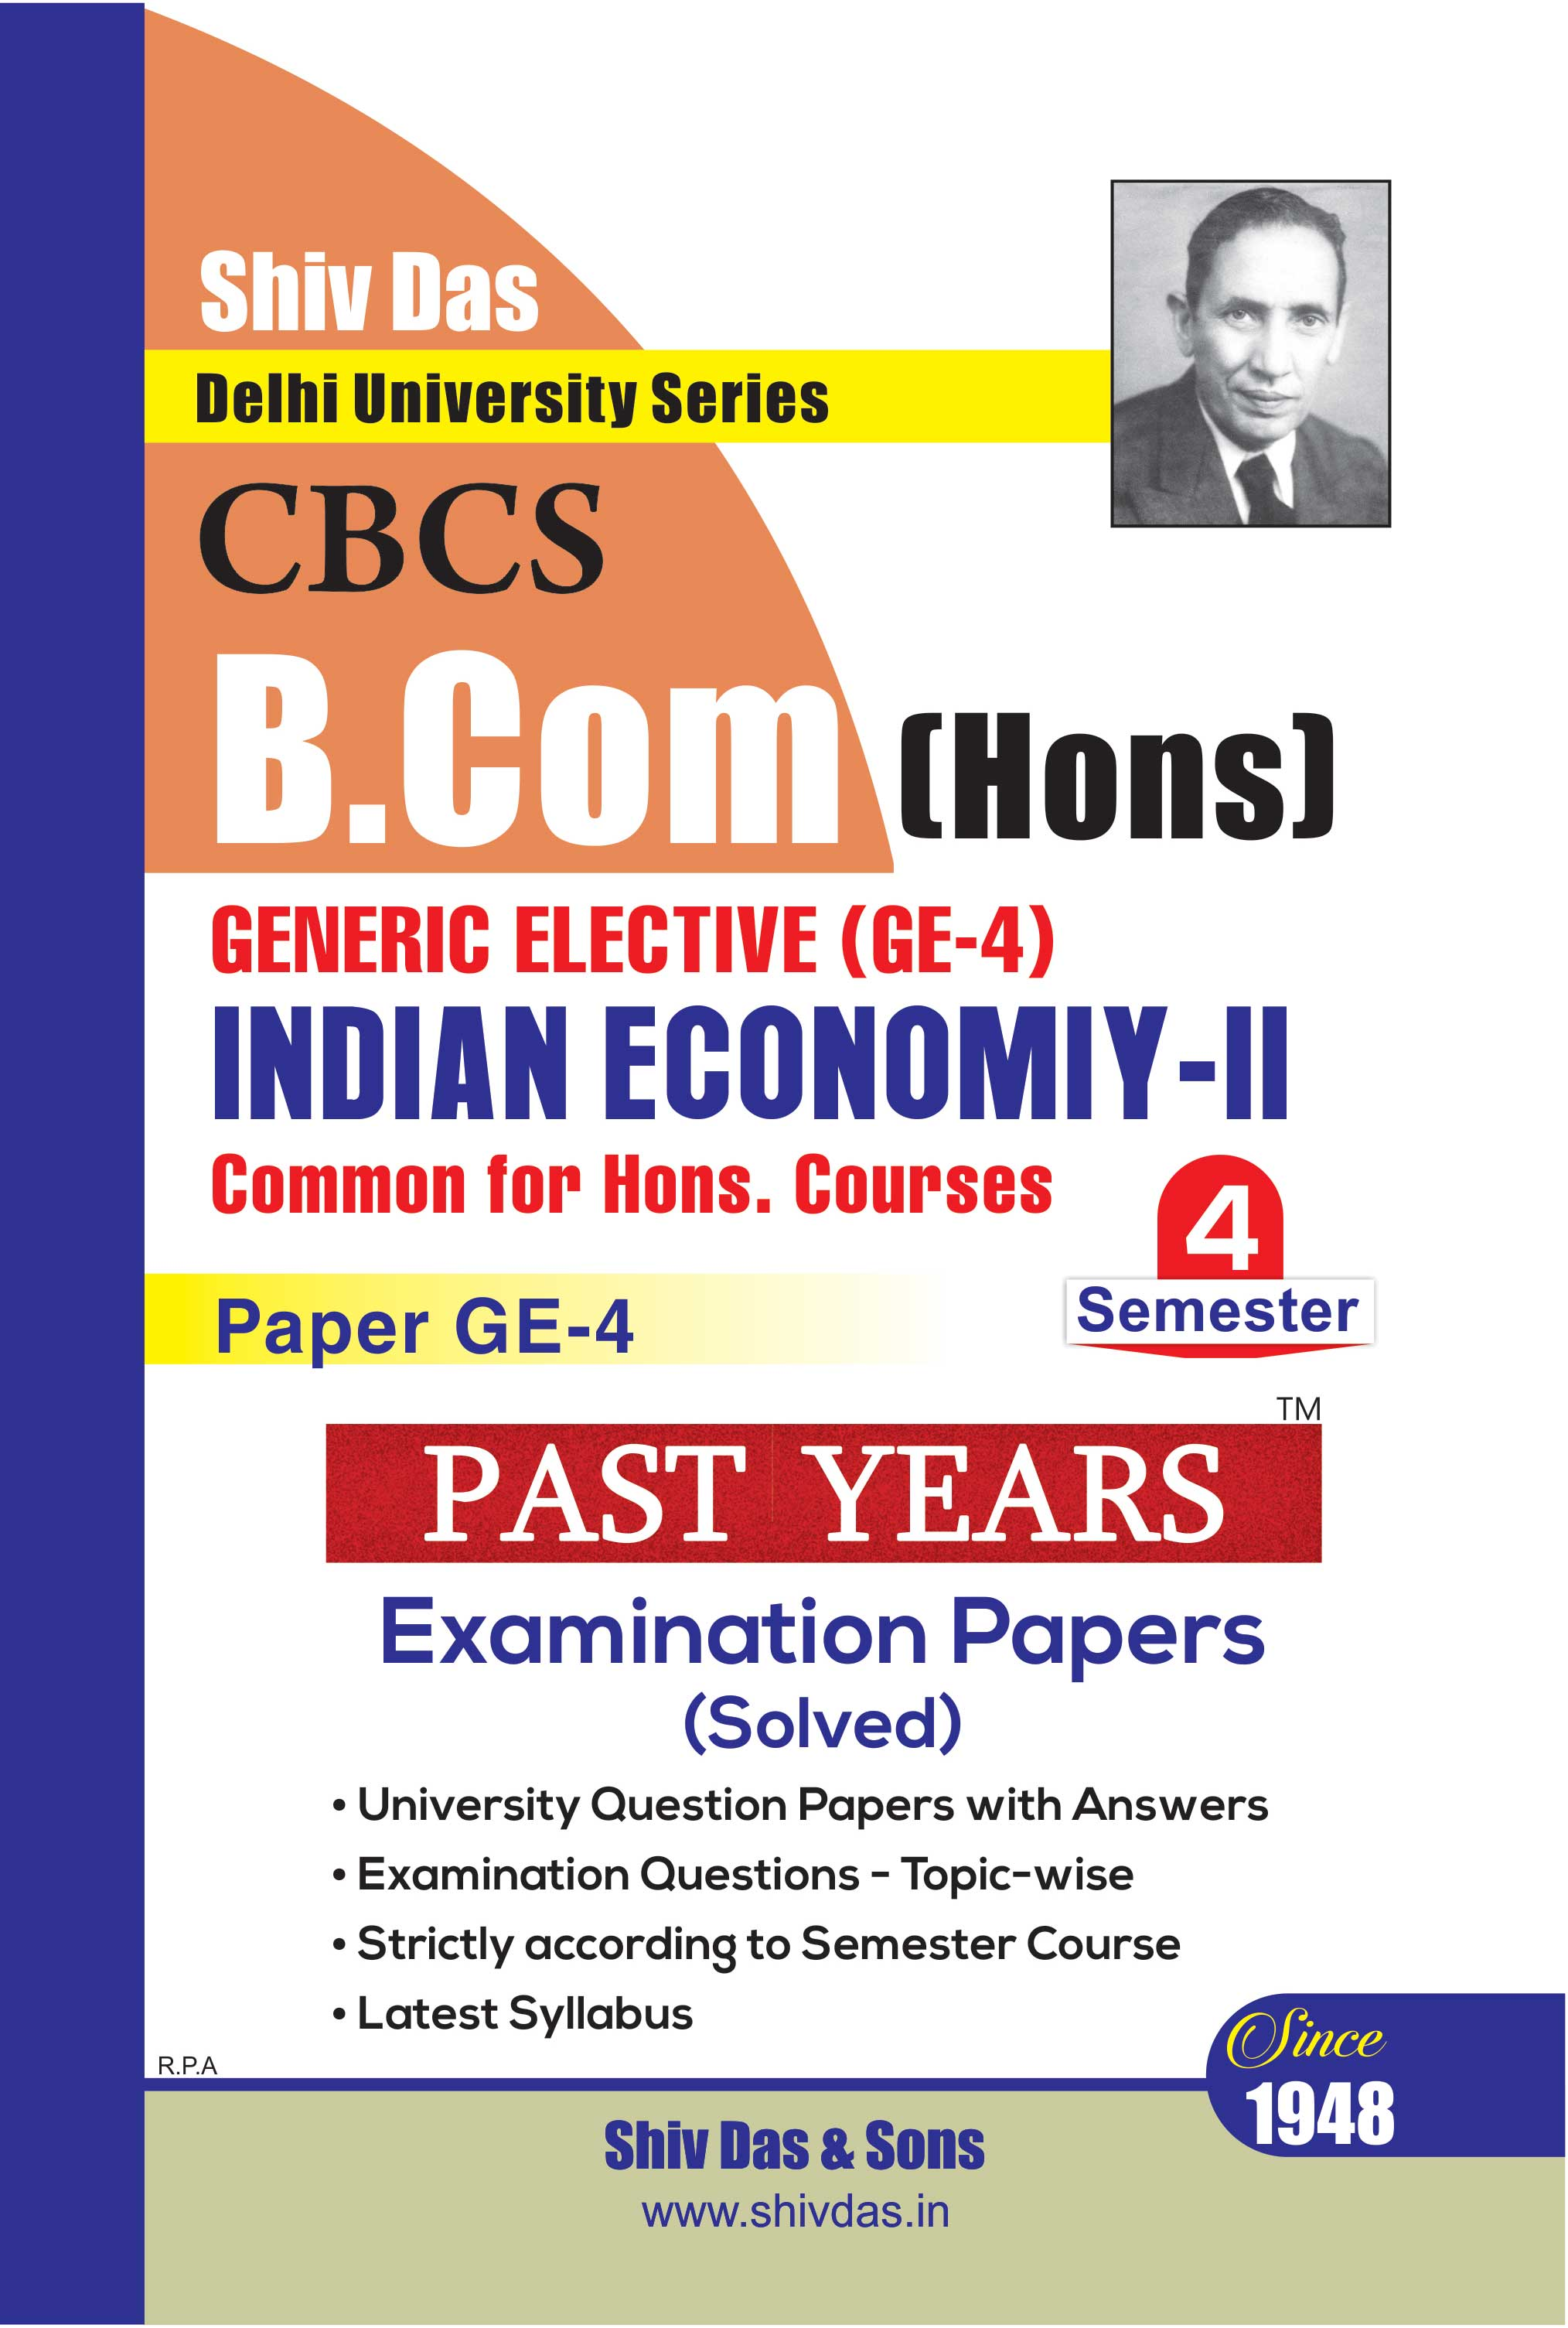 Indian Economy-II for B.Com Hons Semester 4